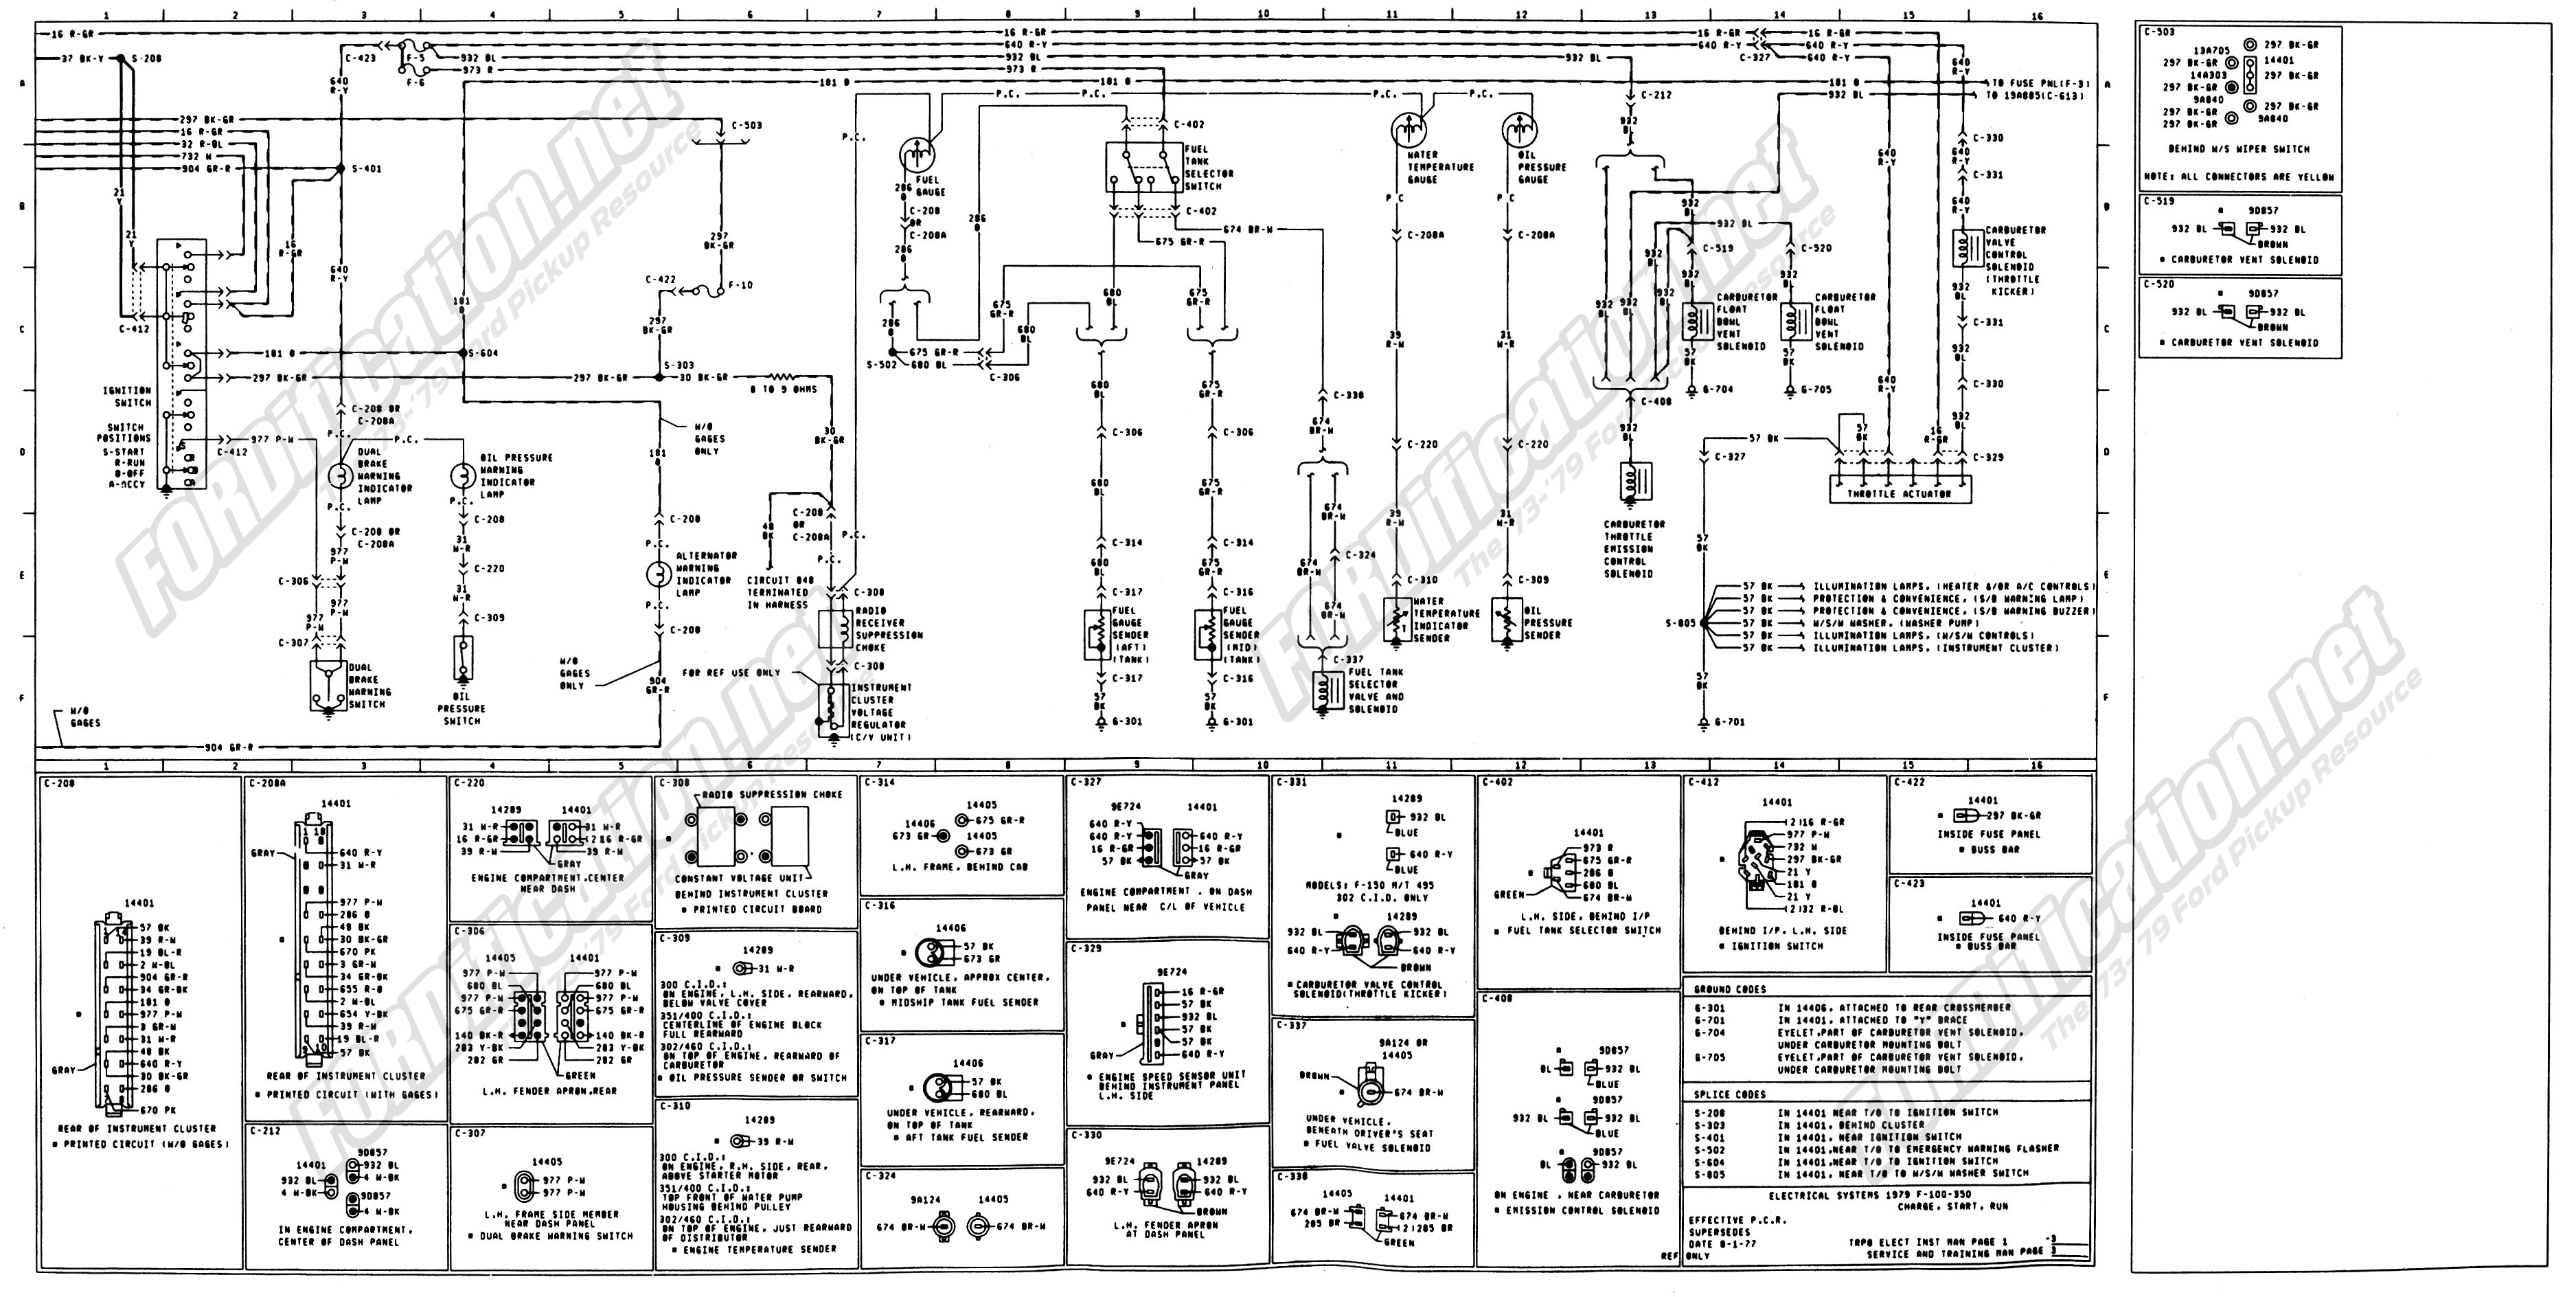 1979 Ford Truck Wiring System Modern Design Of Diagram 1975 Diagrams 1973 Schematics Fordification Net Rh 1983 1977